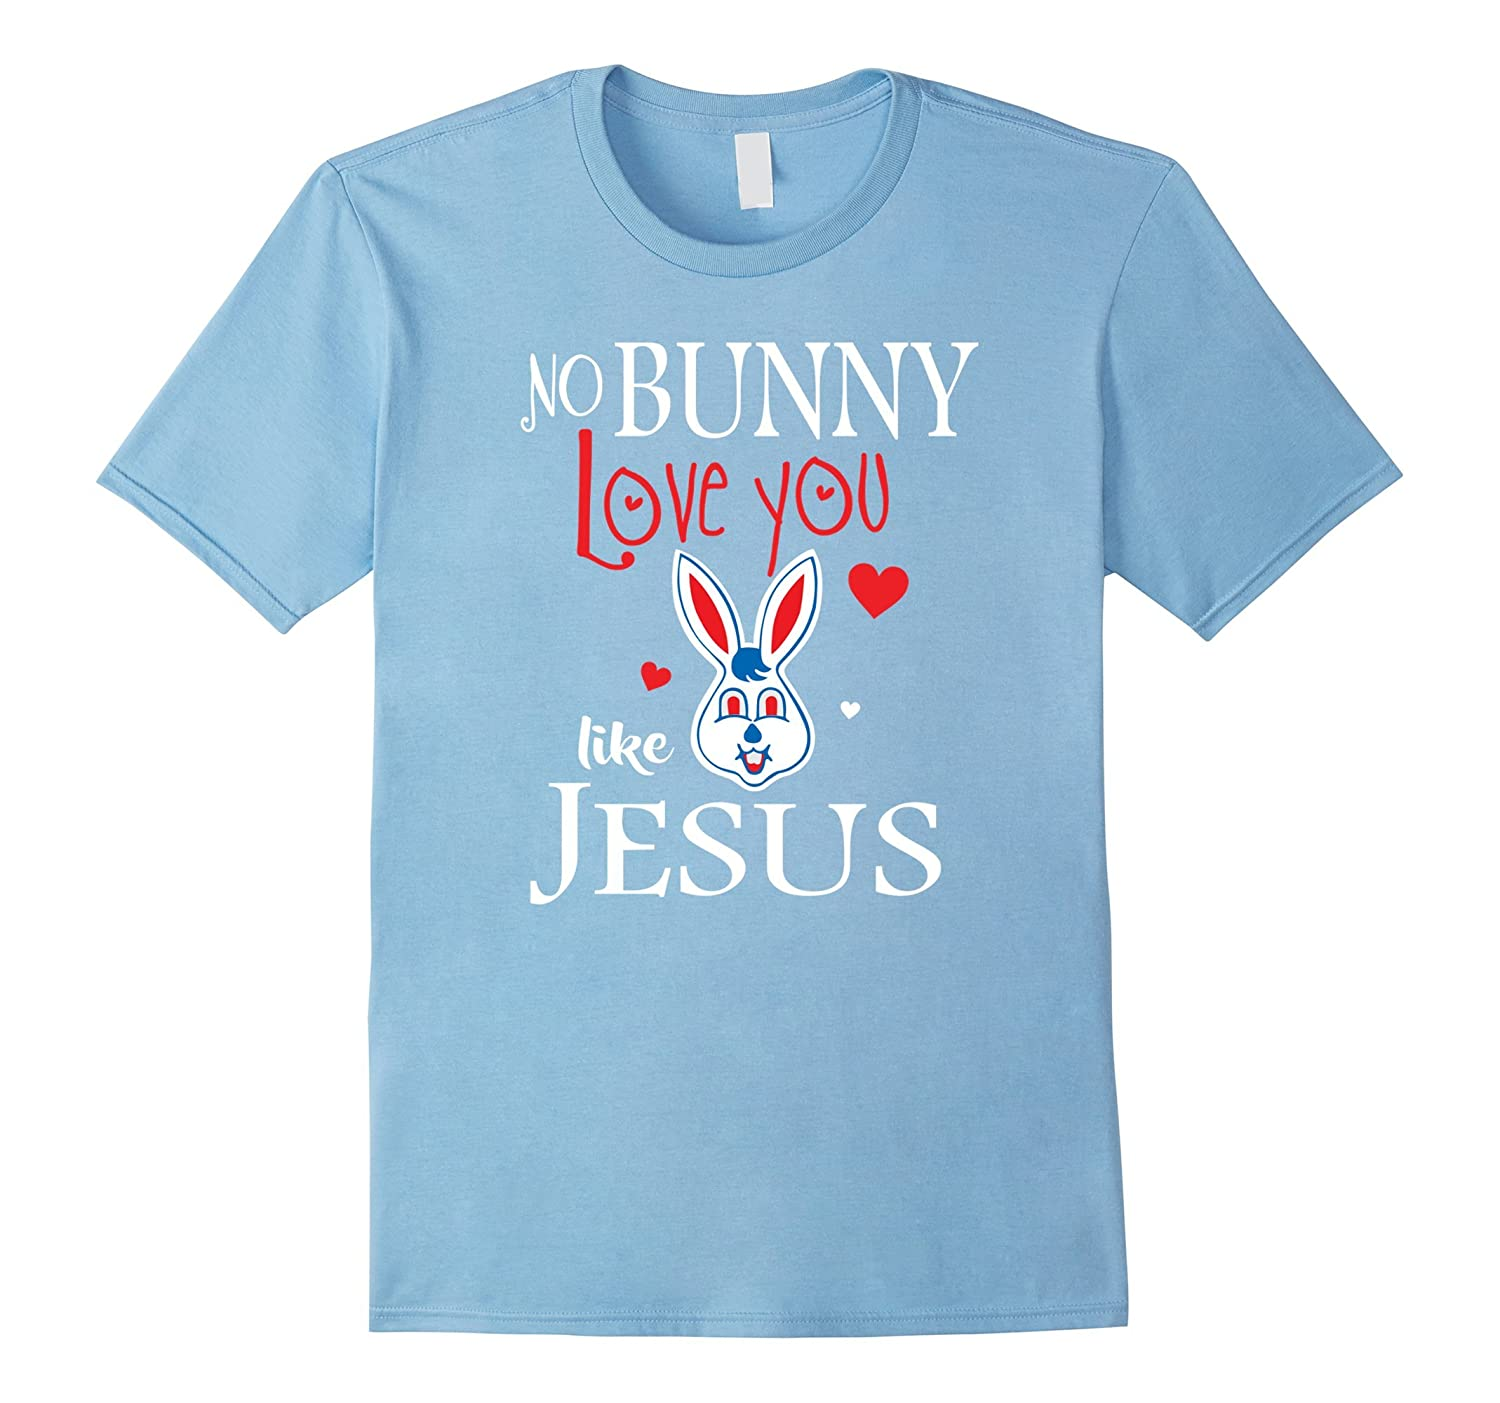 ffc5a3a5a No Bunny Loves You Like Jesus Shirt – Funny Easter Shirts-RT ...